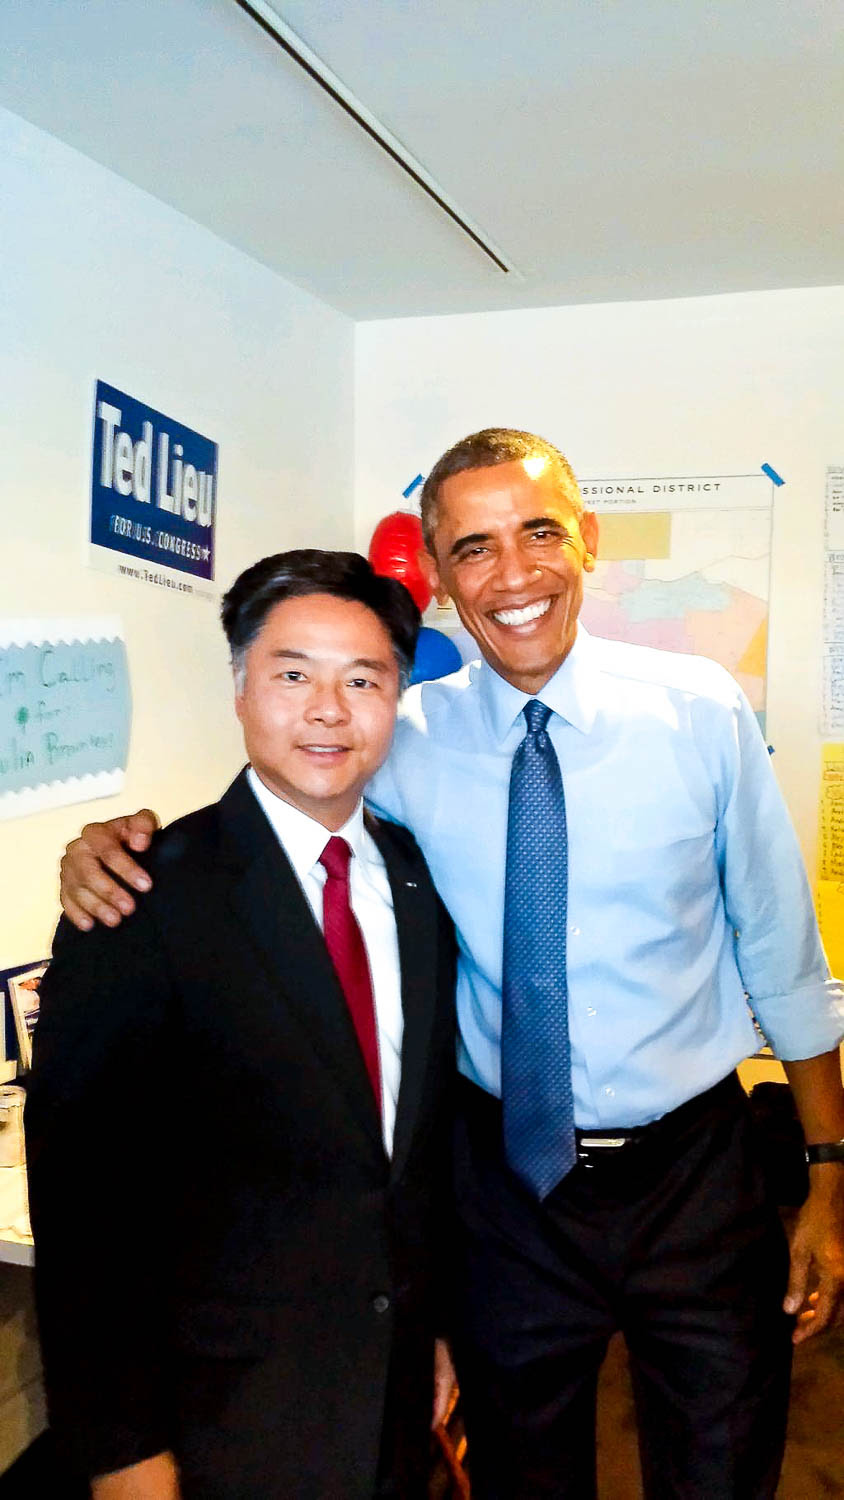 President Barack Obama visits congressional candidate Sen. Ted Lieu at his Venice campaign headquarters